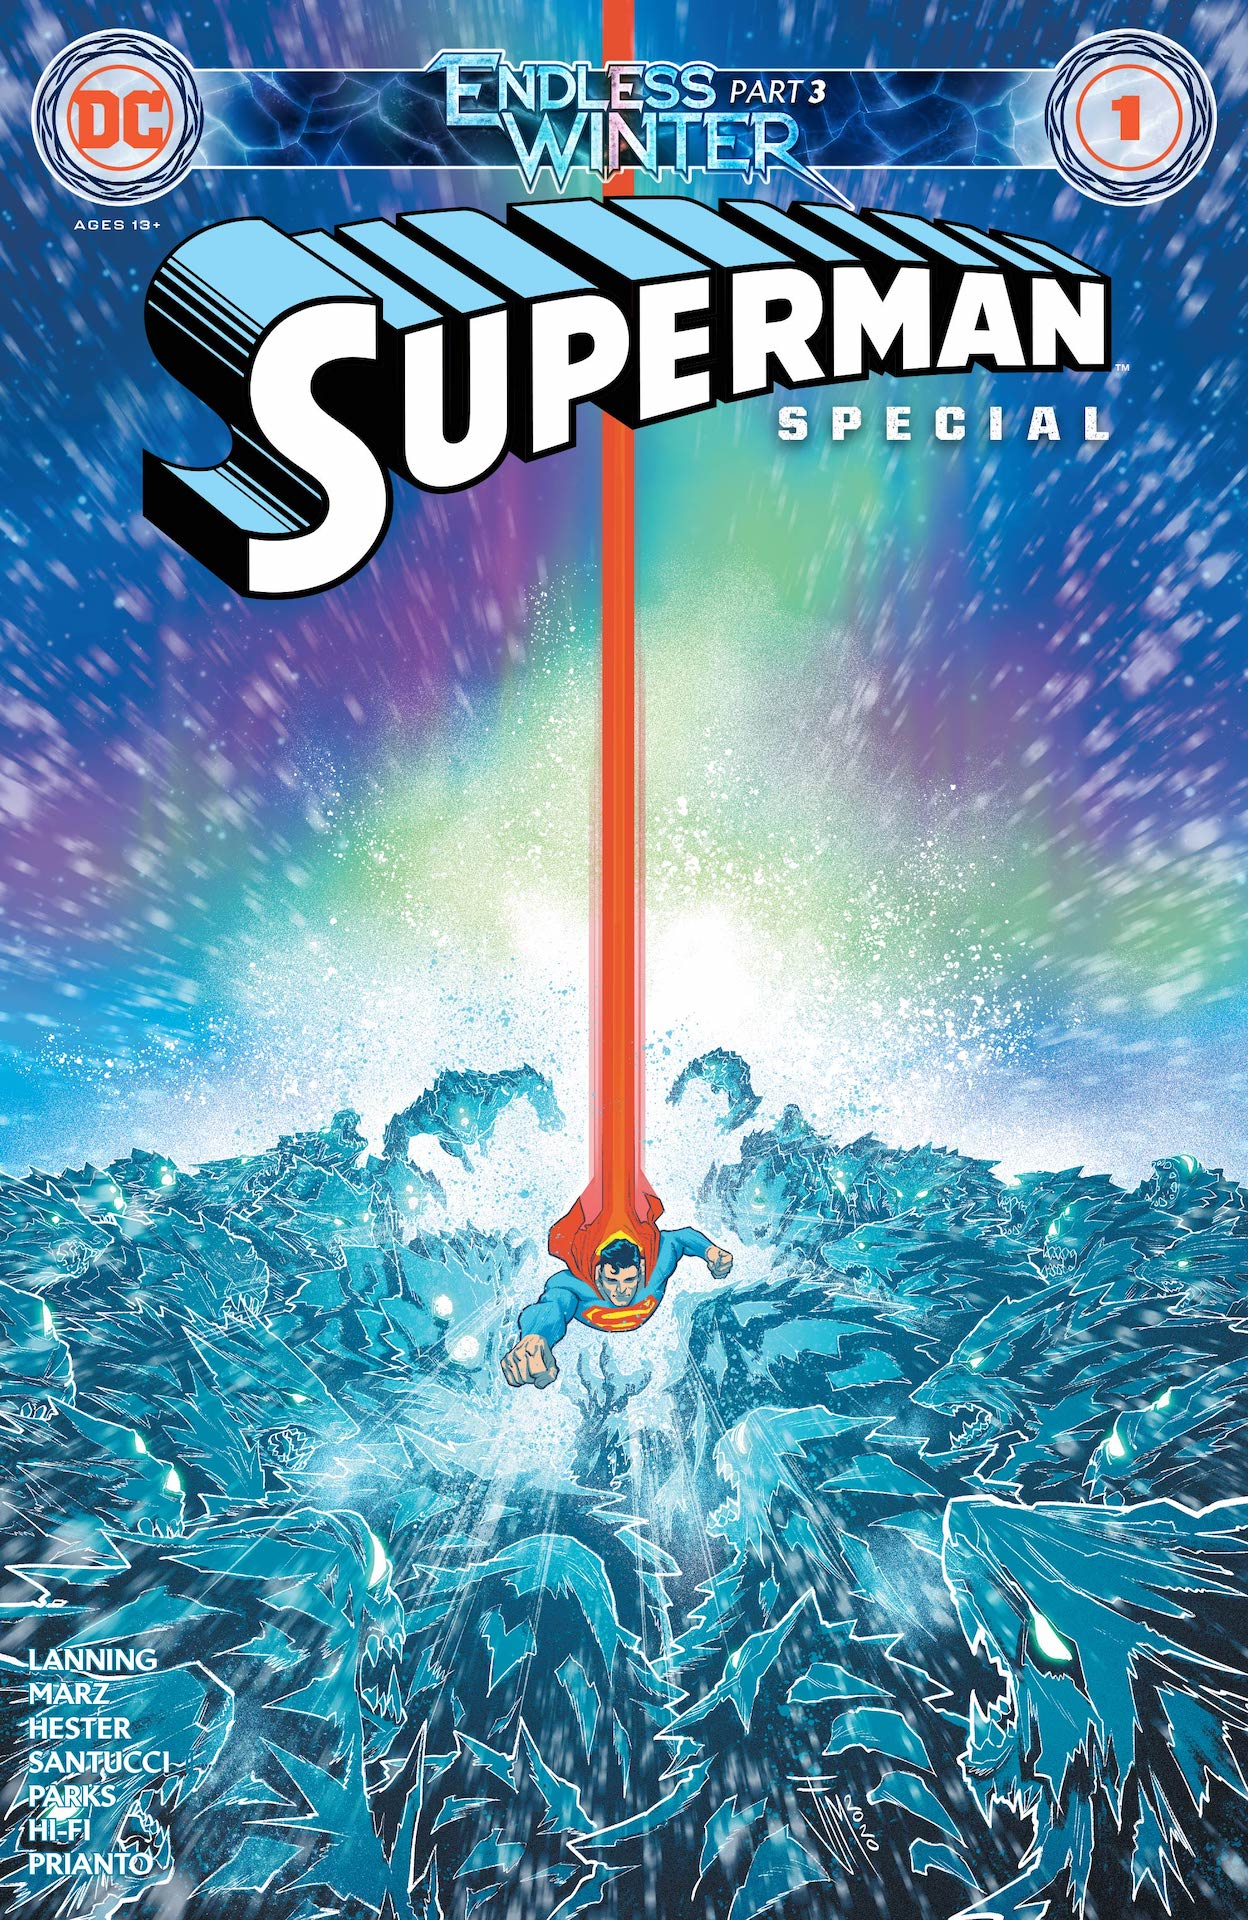 DC Preview: Superman: Endless Winter Special #1